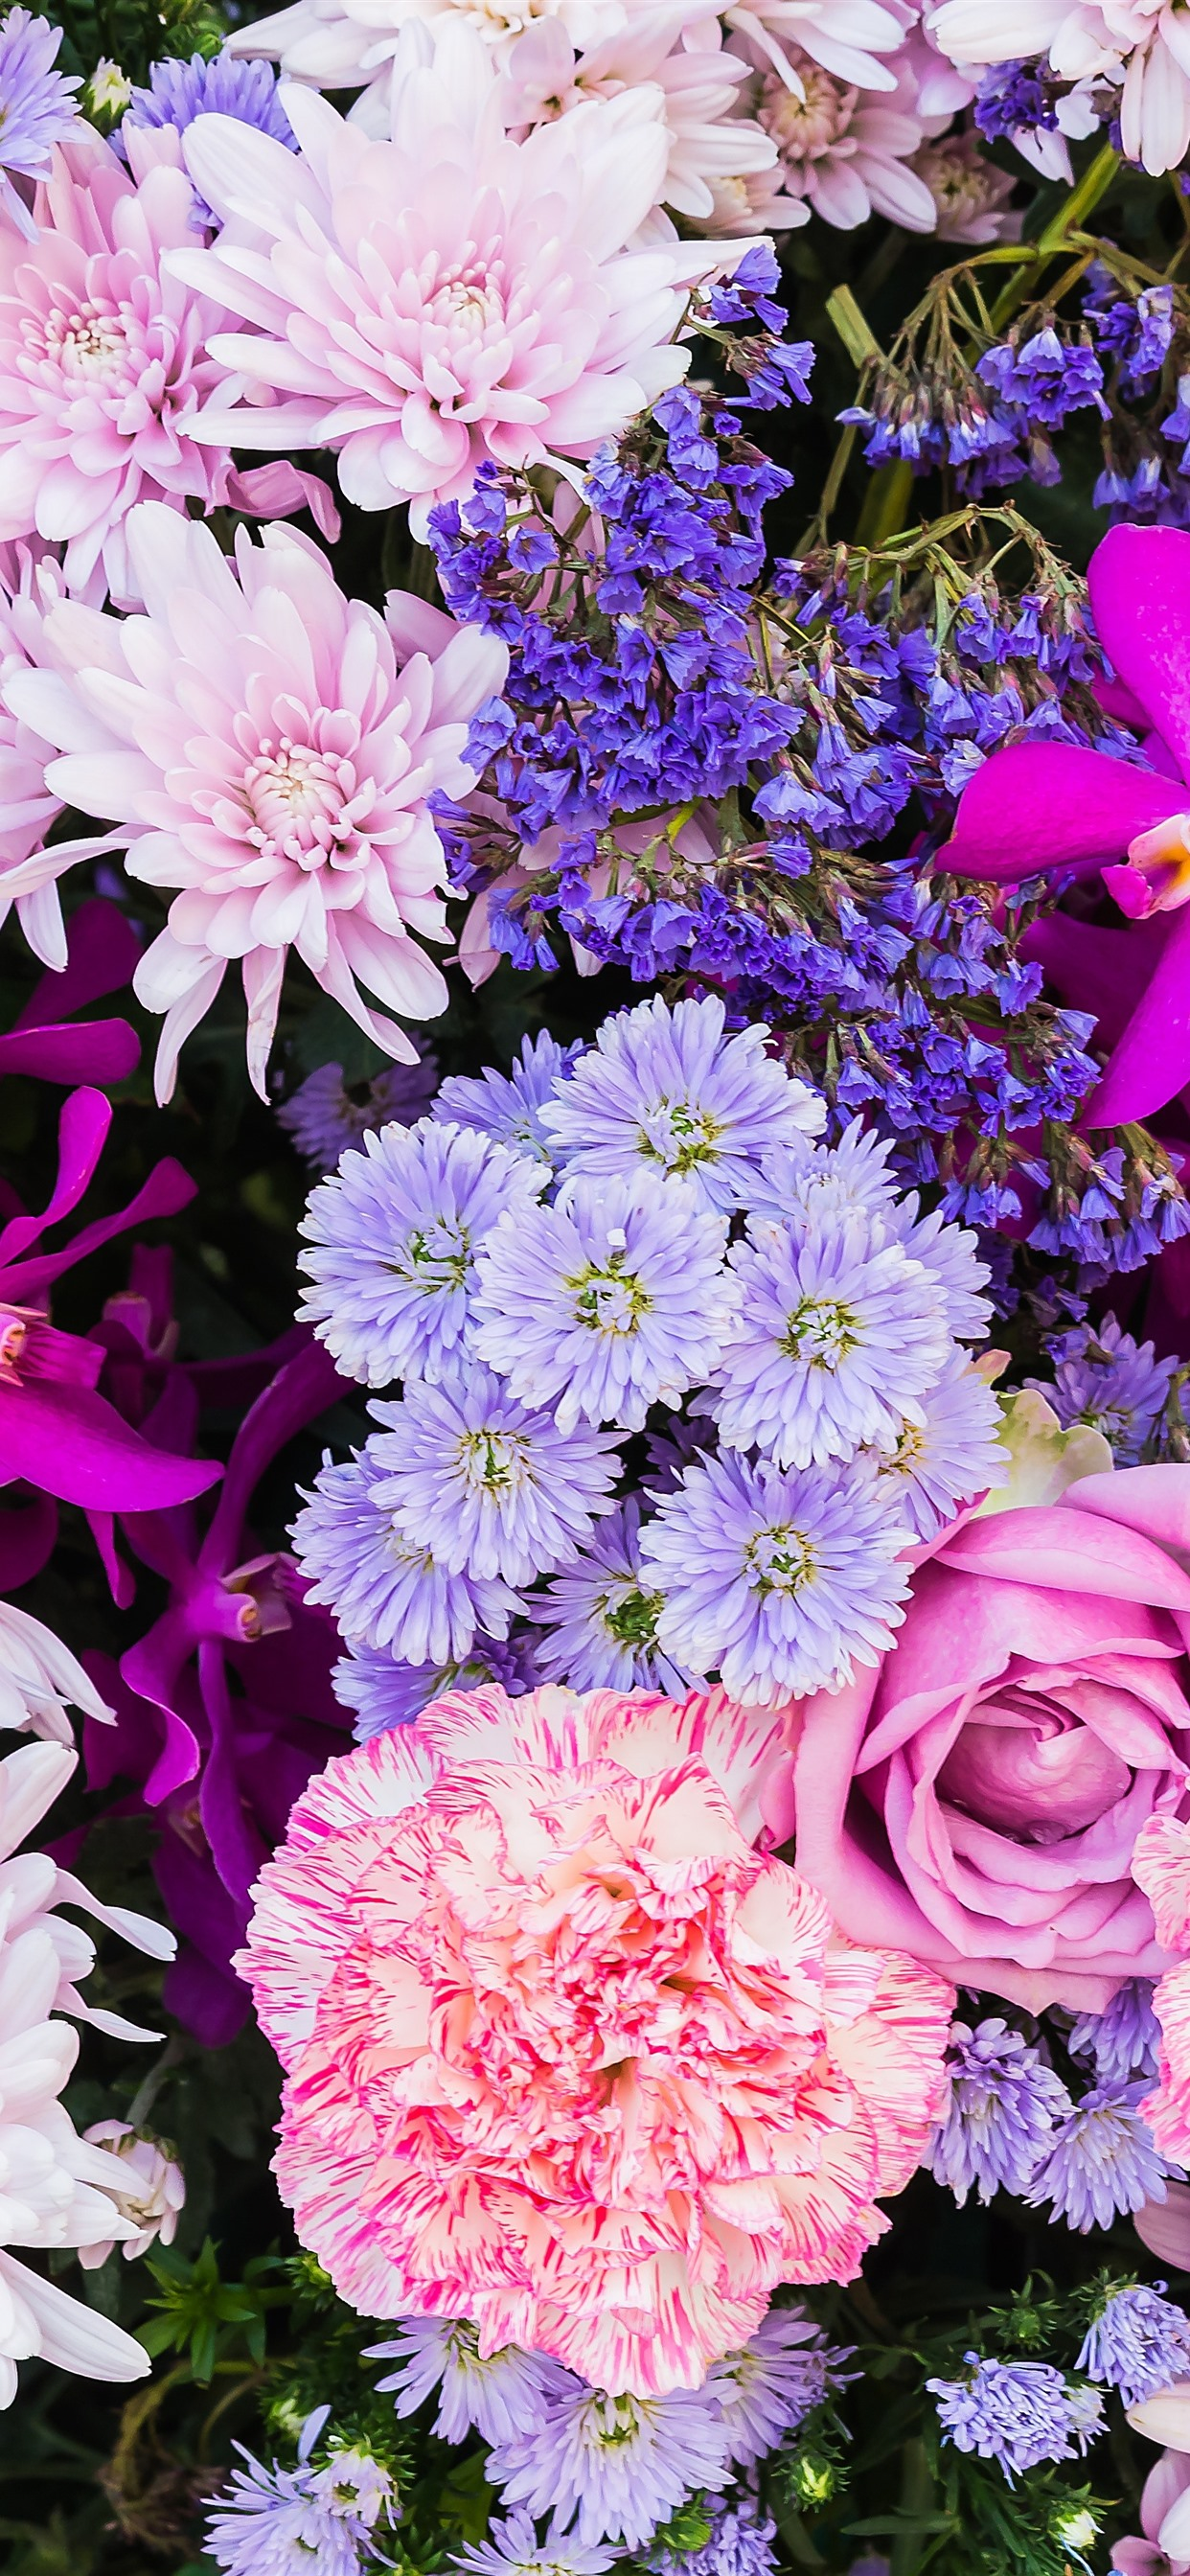 Colorful Flowers Many Kinds Petals 1242x2688 Iphone Xs Max